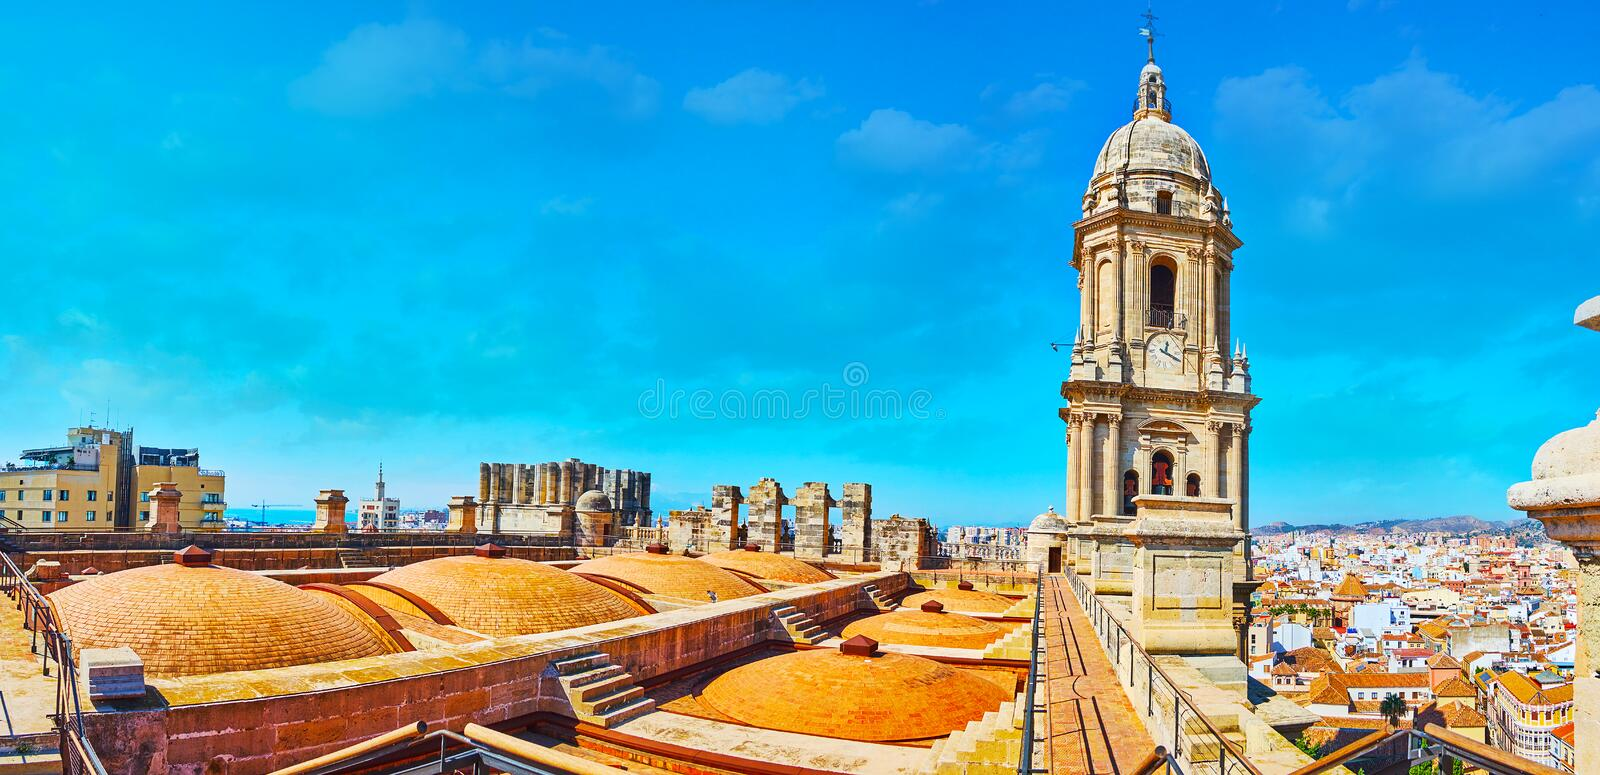 Panorama of Malaga Cathedral roof, Spain. Panorama of the roof of Malaga Cathedral with many domes and the medieval stone bell tower, rising over the skyline stock image